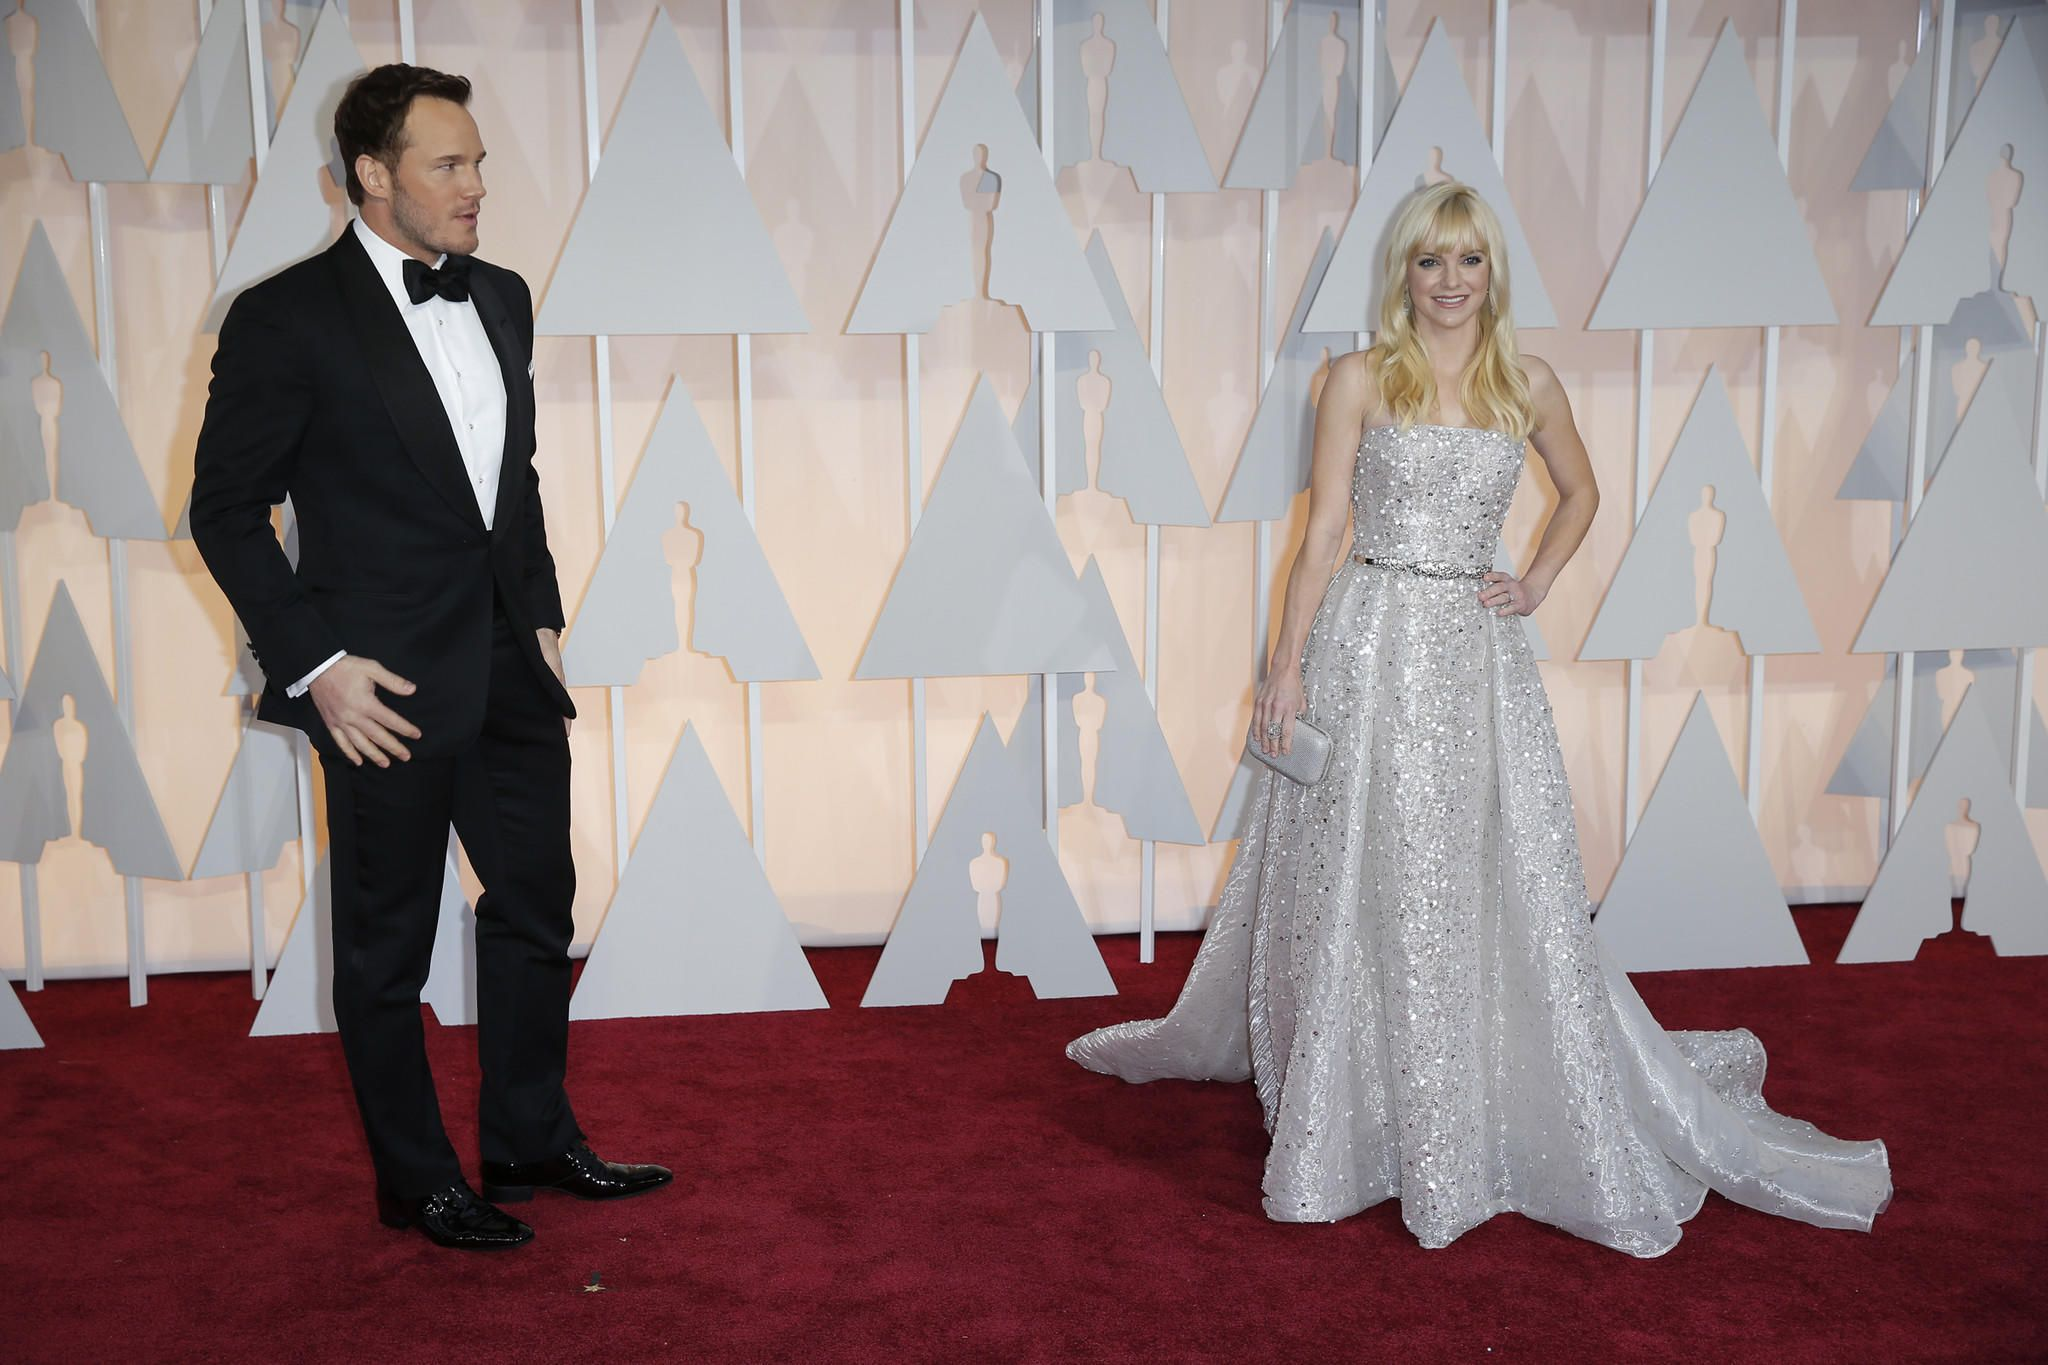 Chris Pratt and Anna Faris announce they're separating - Los Angeles Times